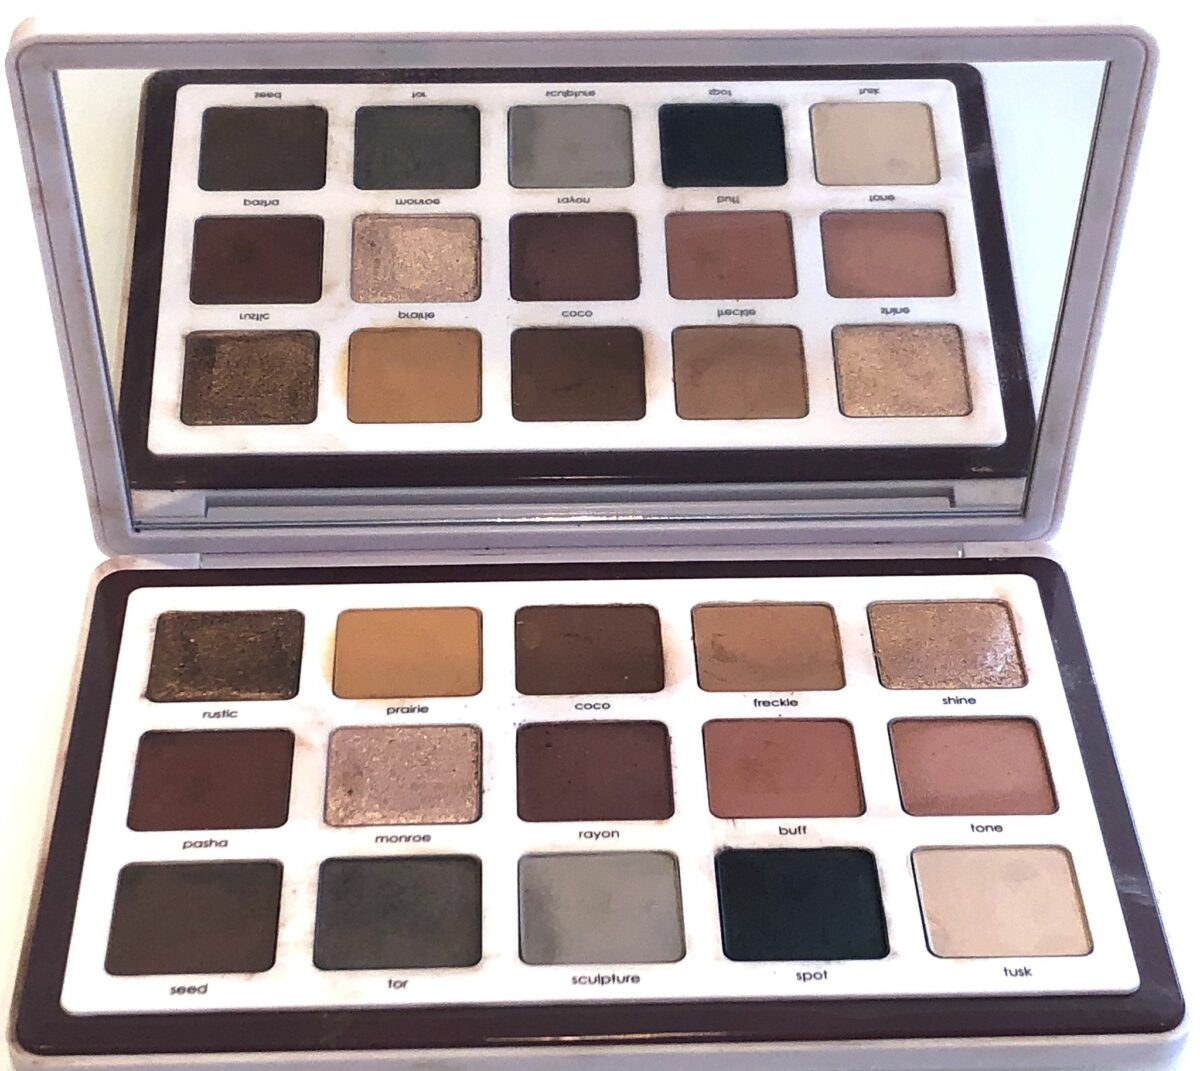 A FULL SIZED MIRROR AND THE FIFTEEN NEW SHADES IN THE NATASHA DENONA NEUTRALS BIBA PALETTE